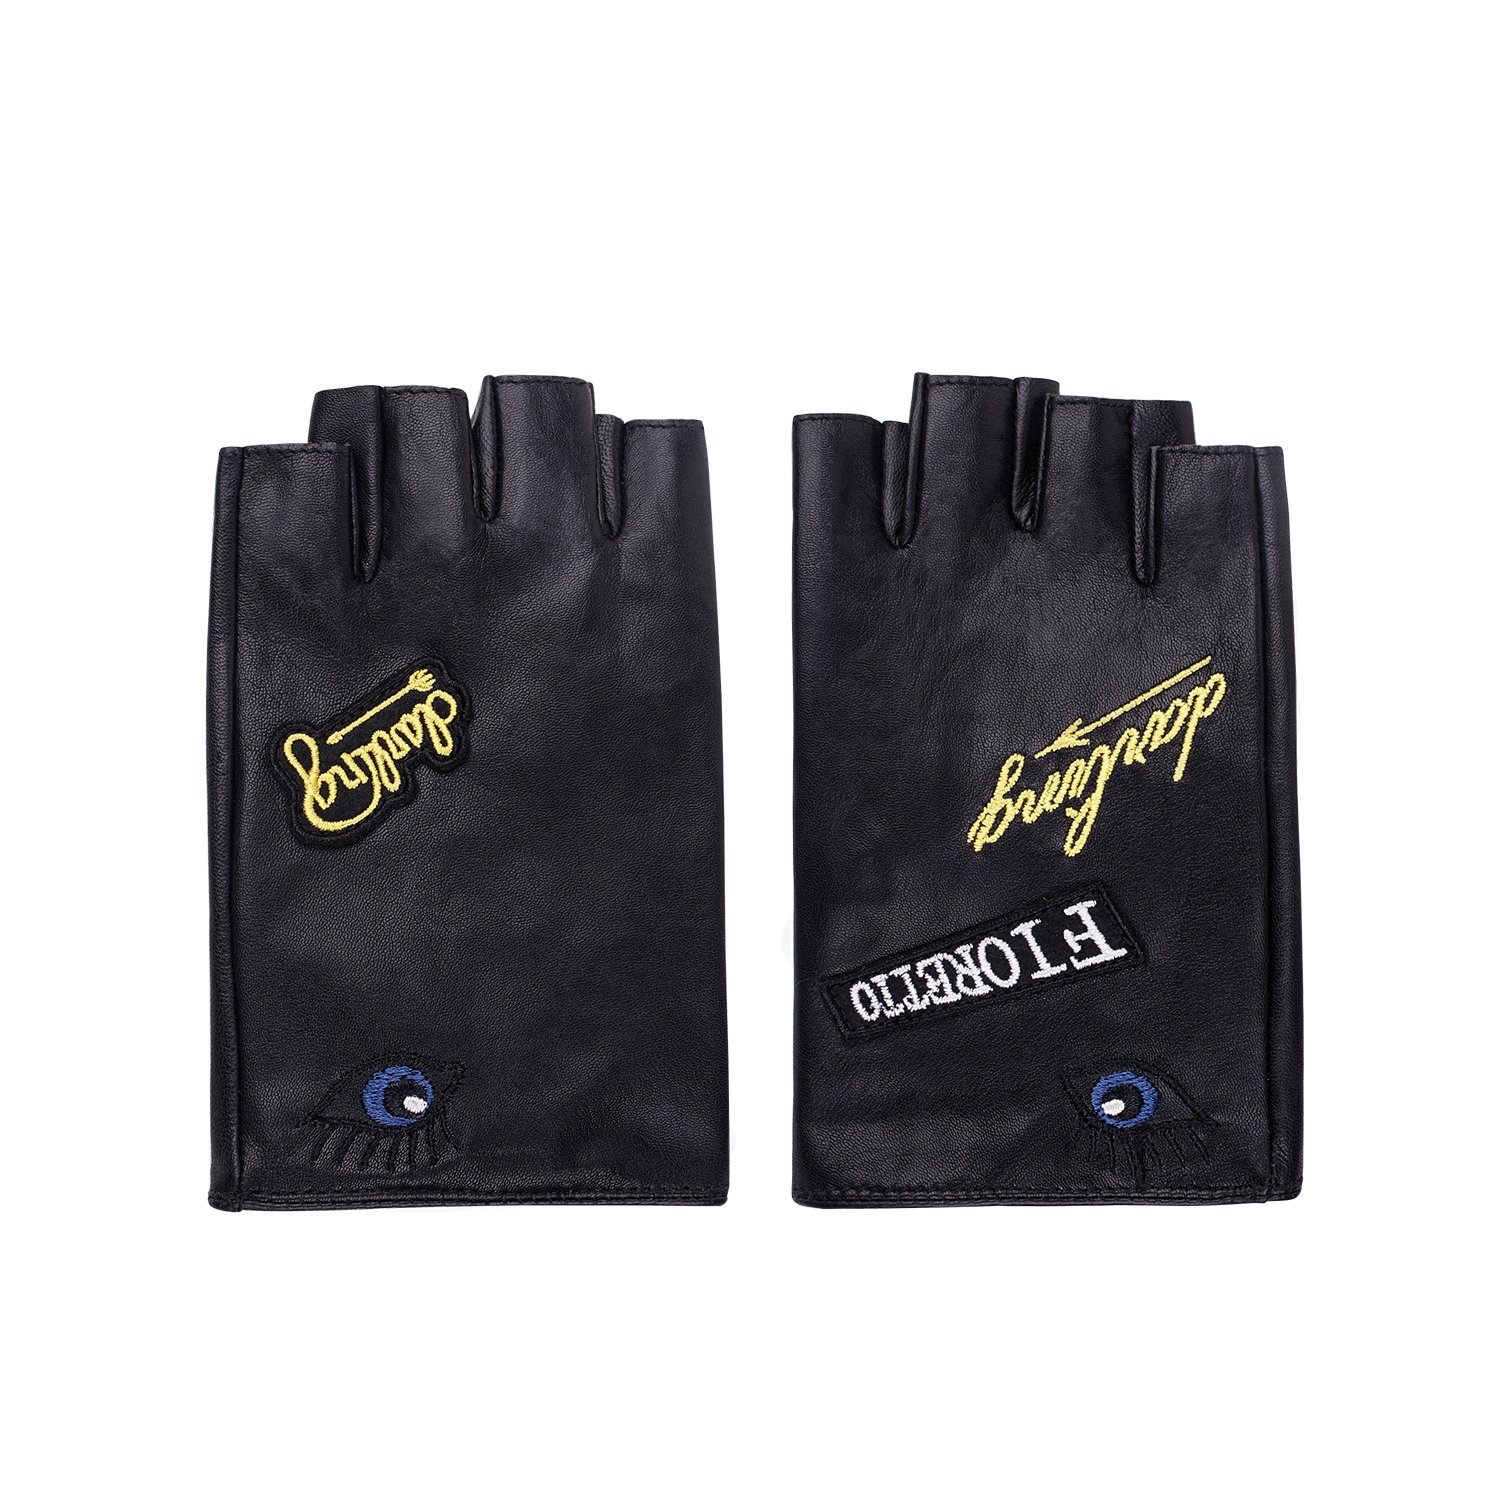 Fioretto 2018 New Arrivals Womens Sexy Driving Fingerless Leather Gloves Half Finger Driving Motorcycle Cycling Unlined Ladies Leather Gloves Women's Gift Black 7